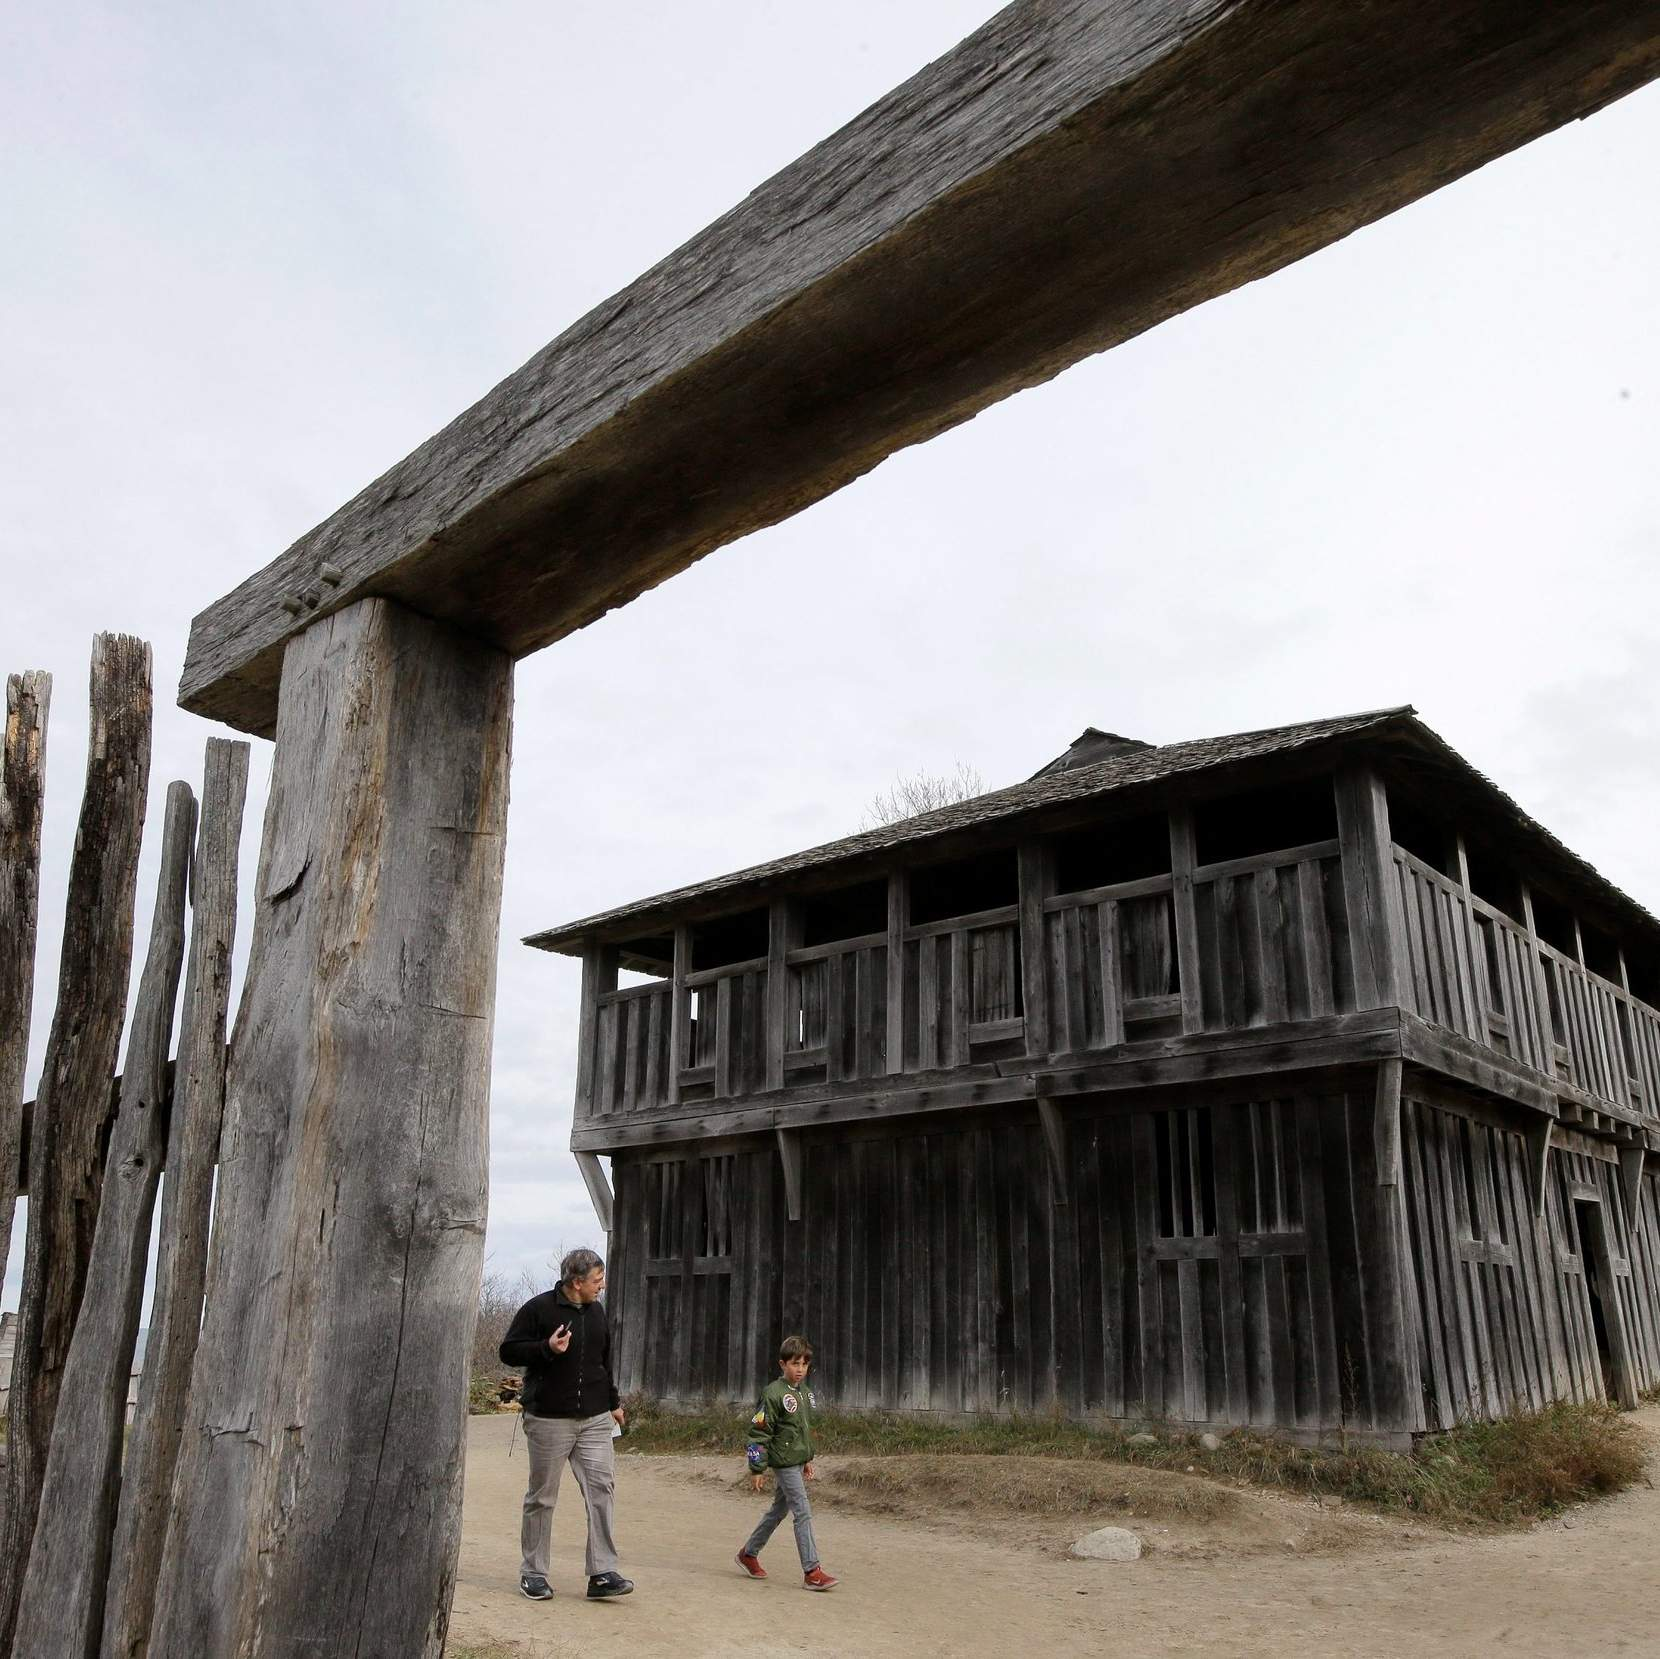 400 years after Pilgrim landing, Native Americans are